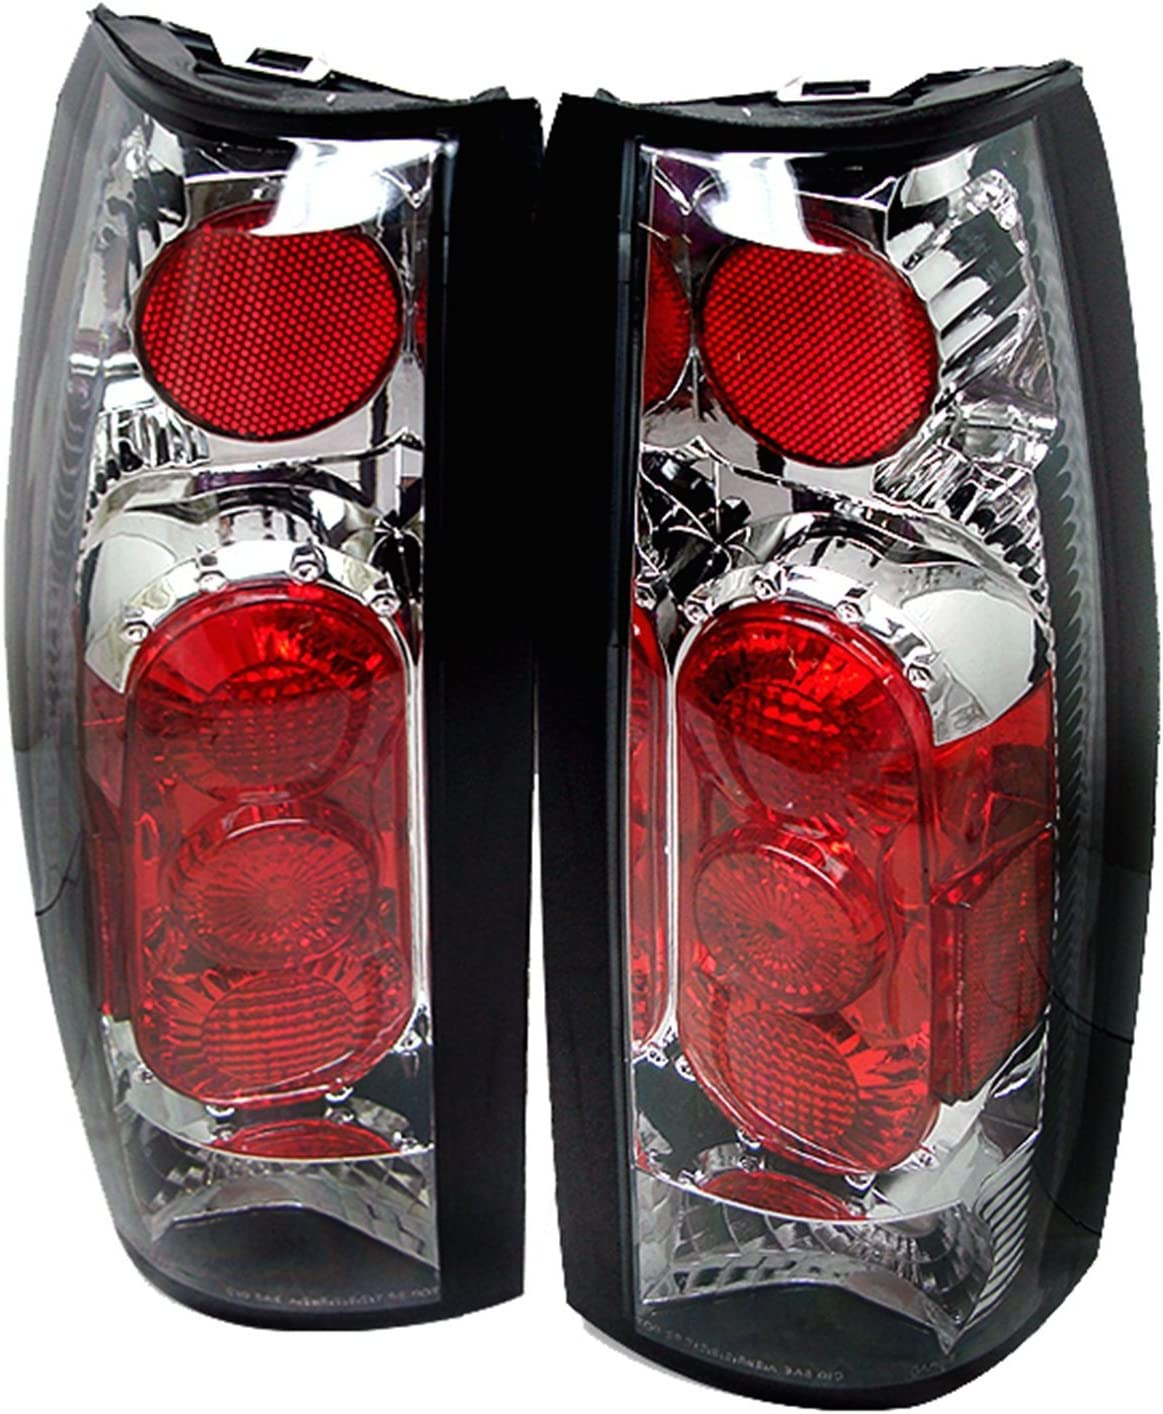 Chrome Clear Xcdiscount Euro Style Tail Light for Chevy C K 1500 2500 3500 88-98